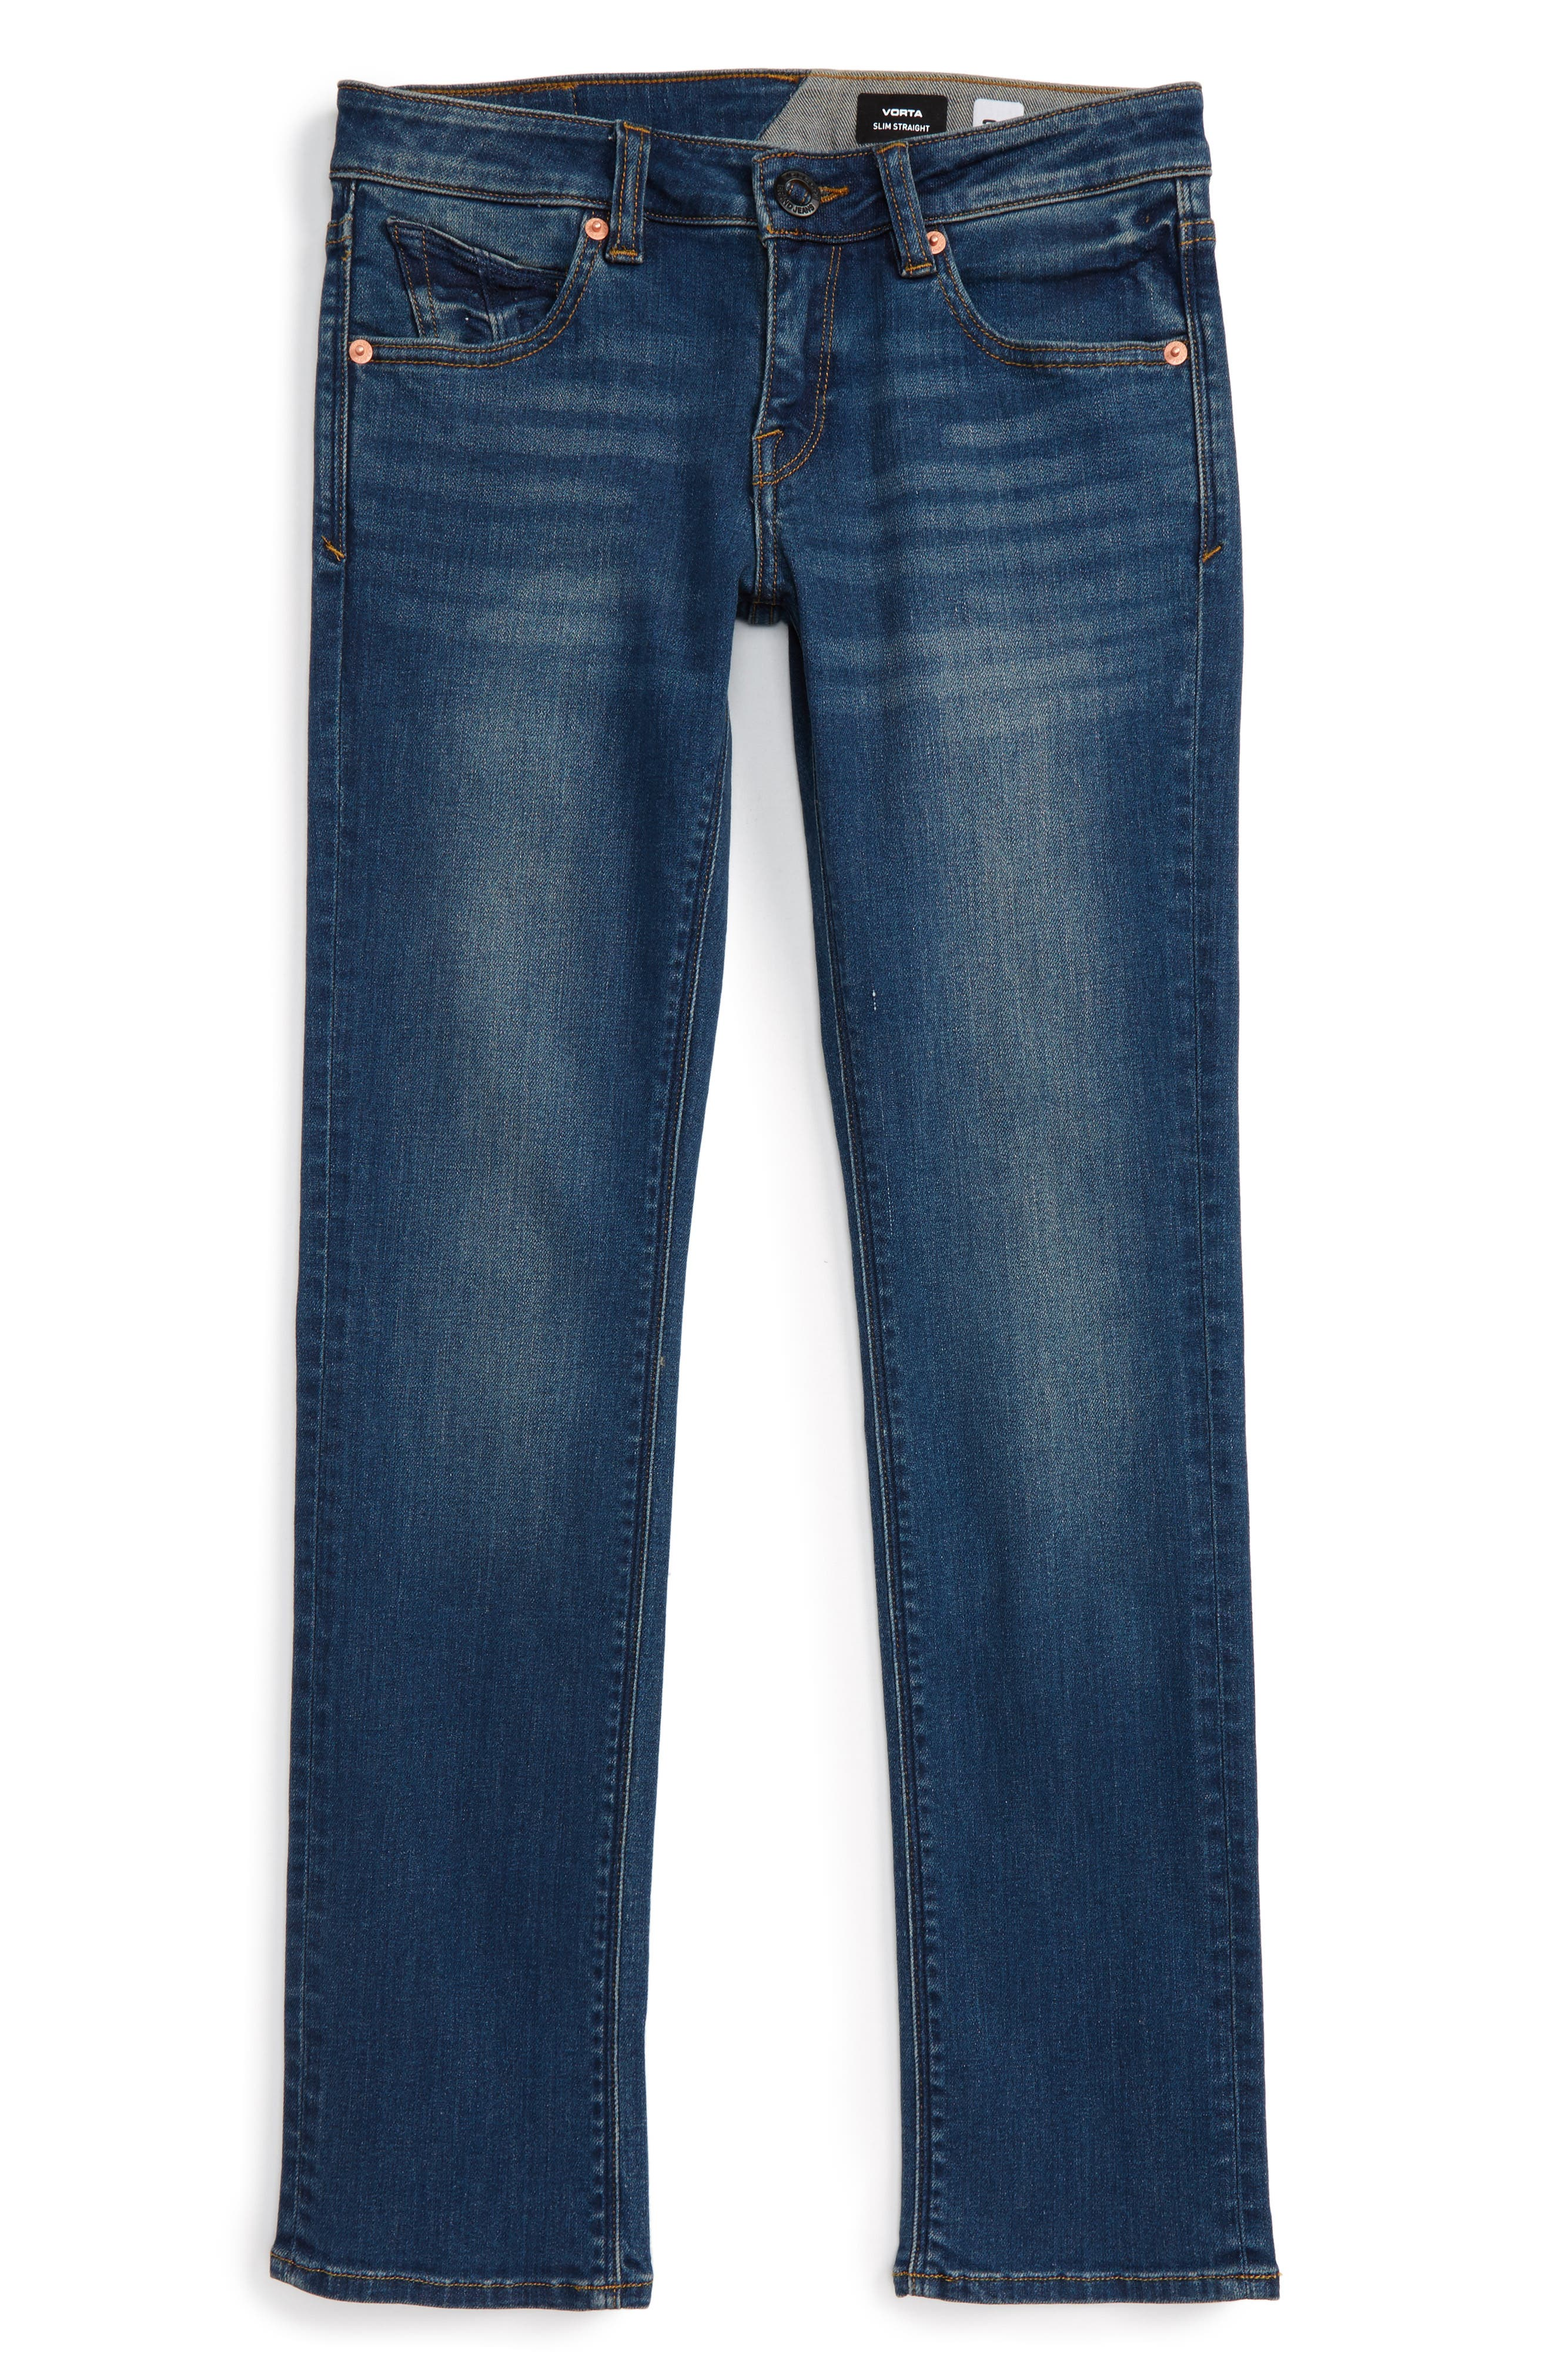 Alternate Image 1 Selected - Volcom Vorta Slim Fit Jeans (Big Boys)